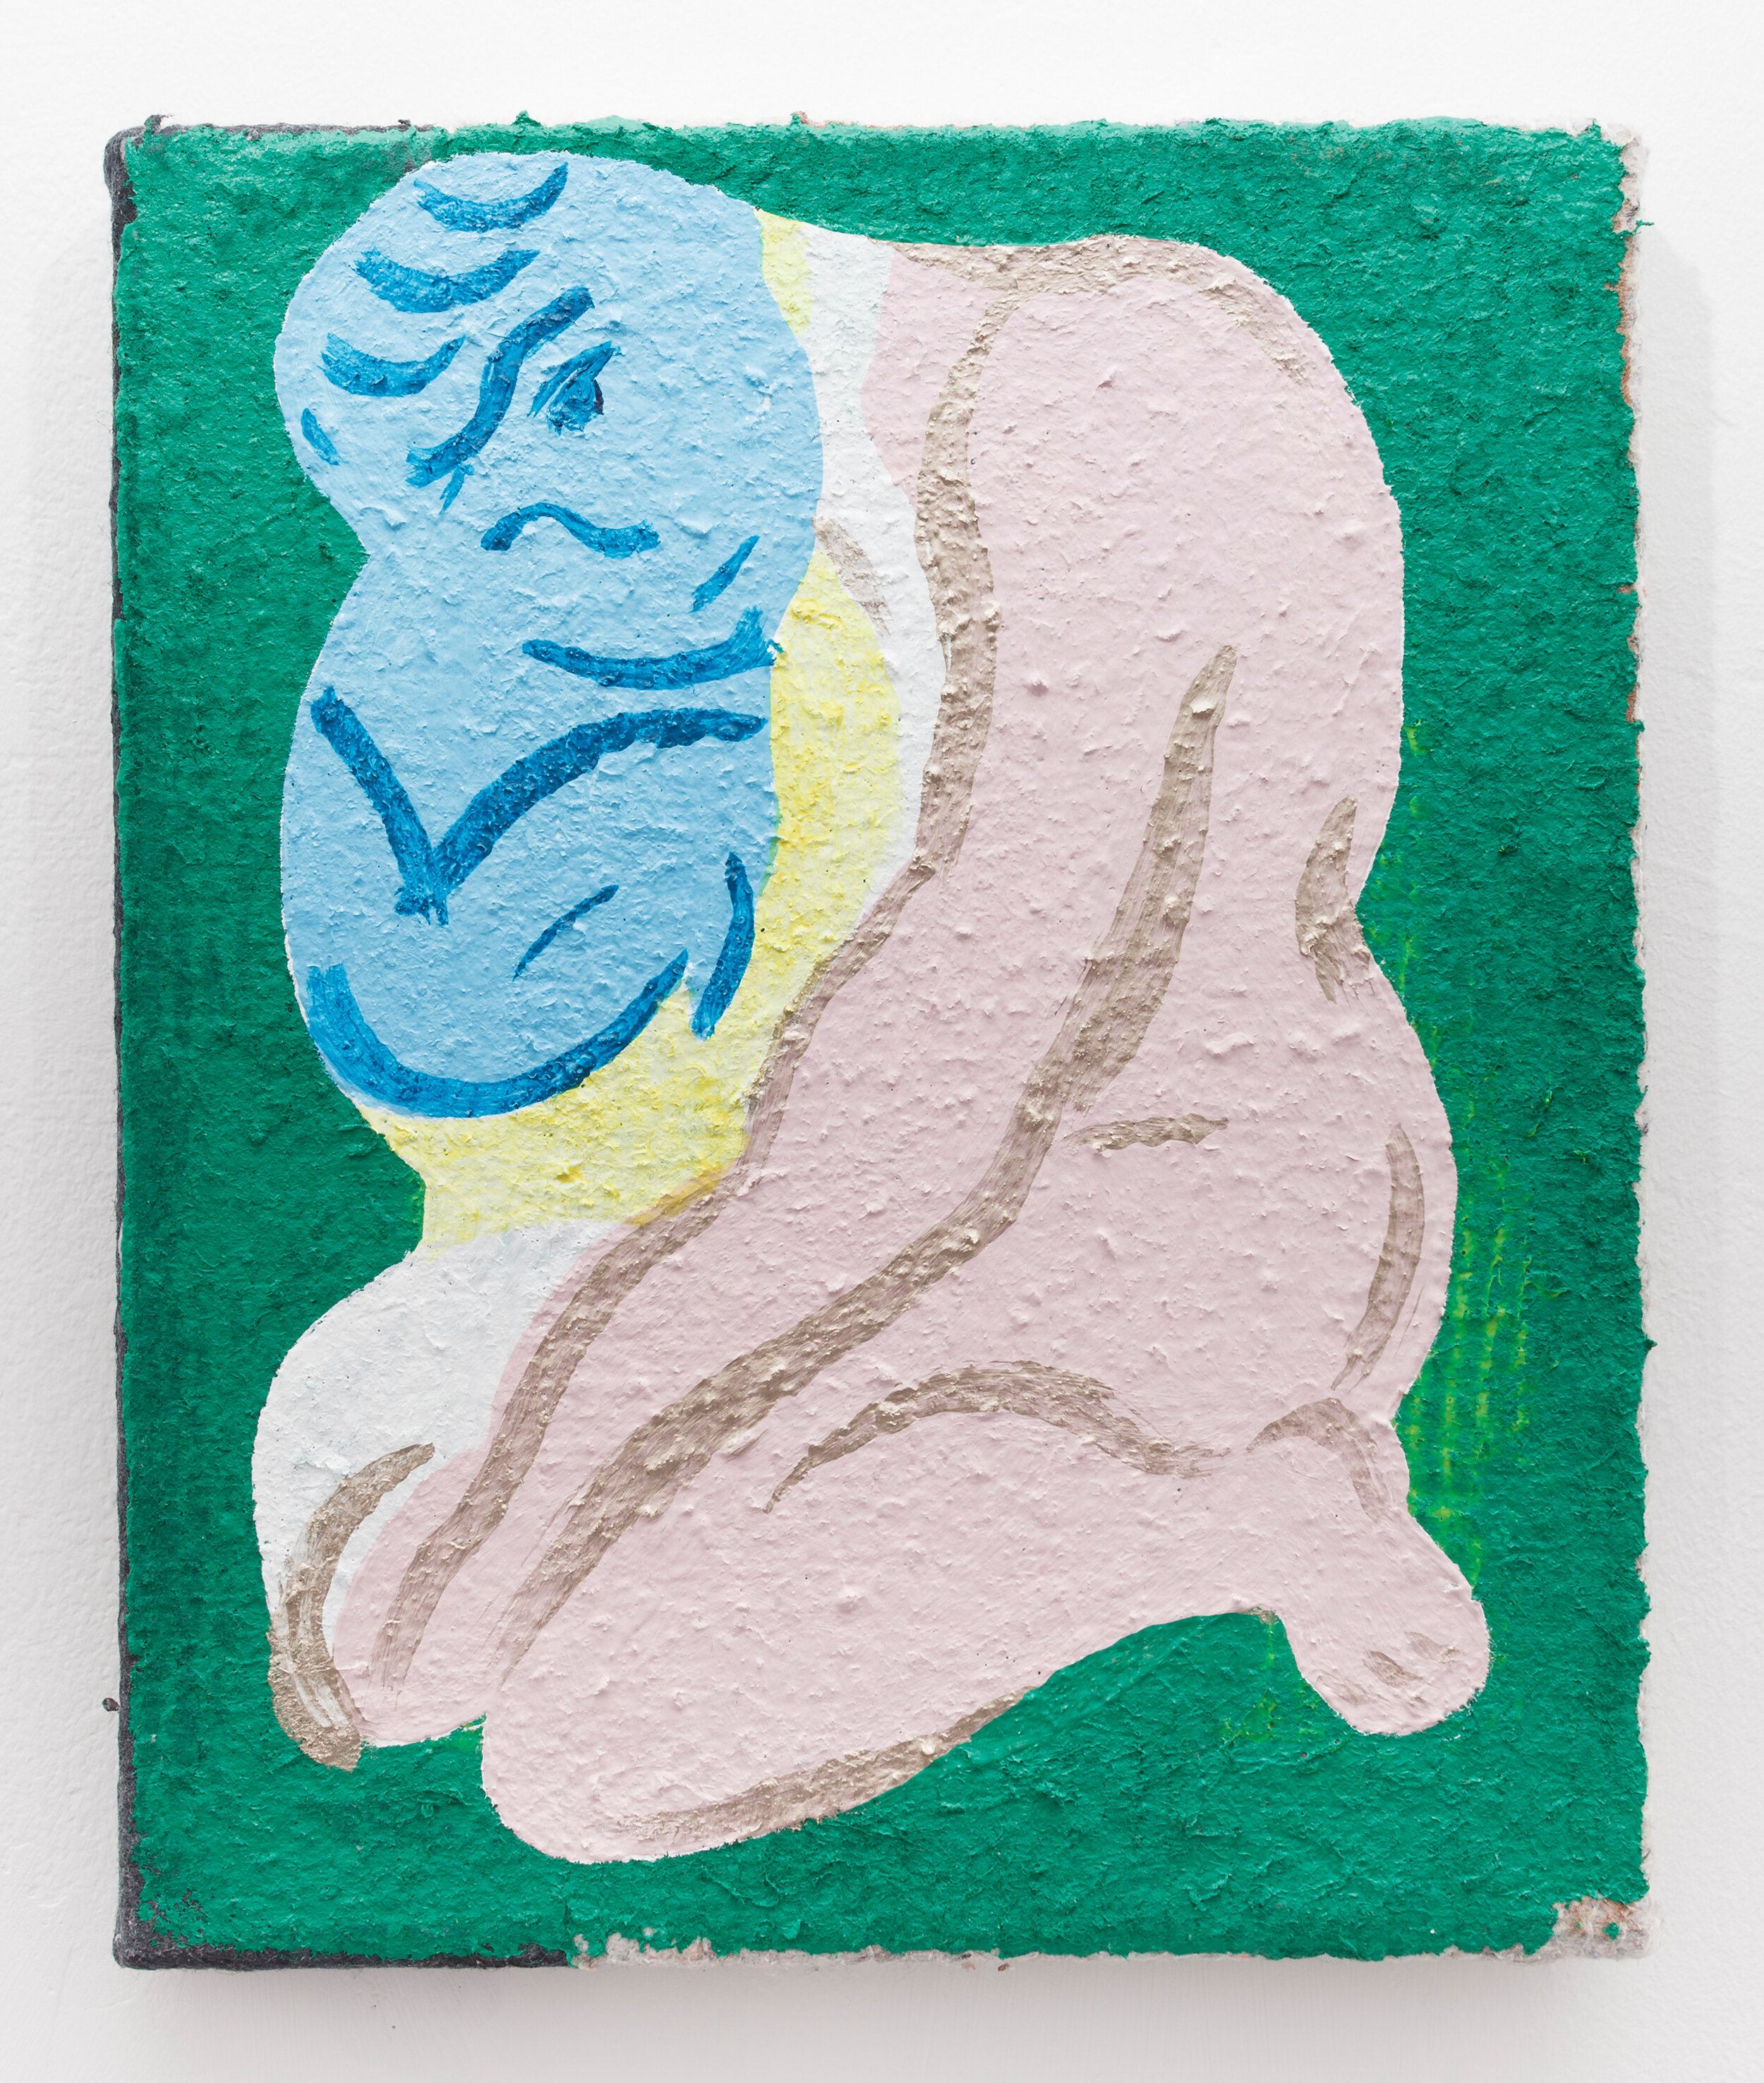 contemplation of a reality that is perhaps the future , 2018. Acrylic on mover's blanket, 30.5 x 25.5 cm.